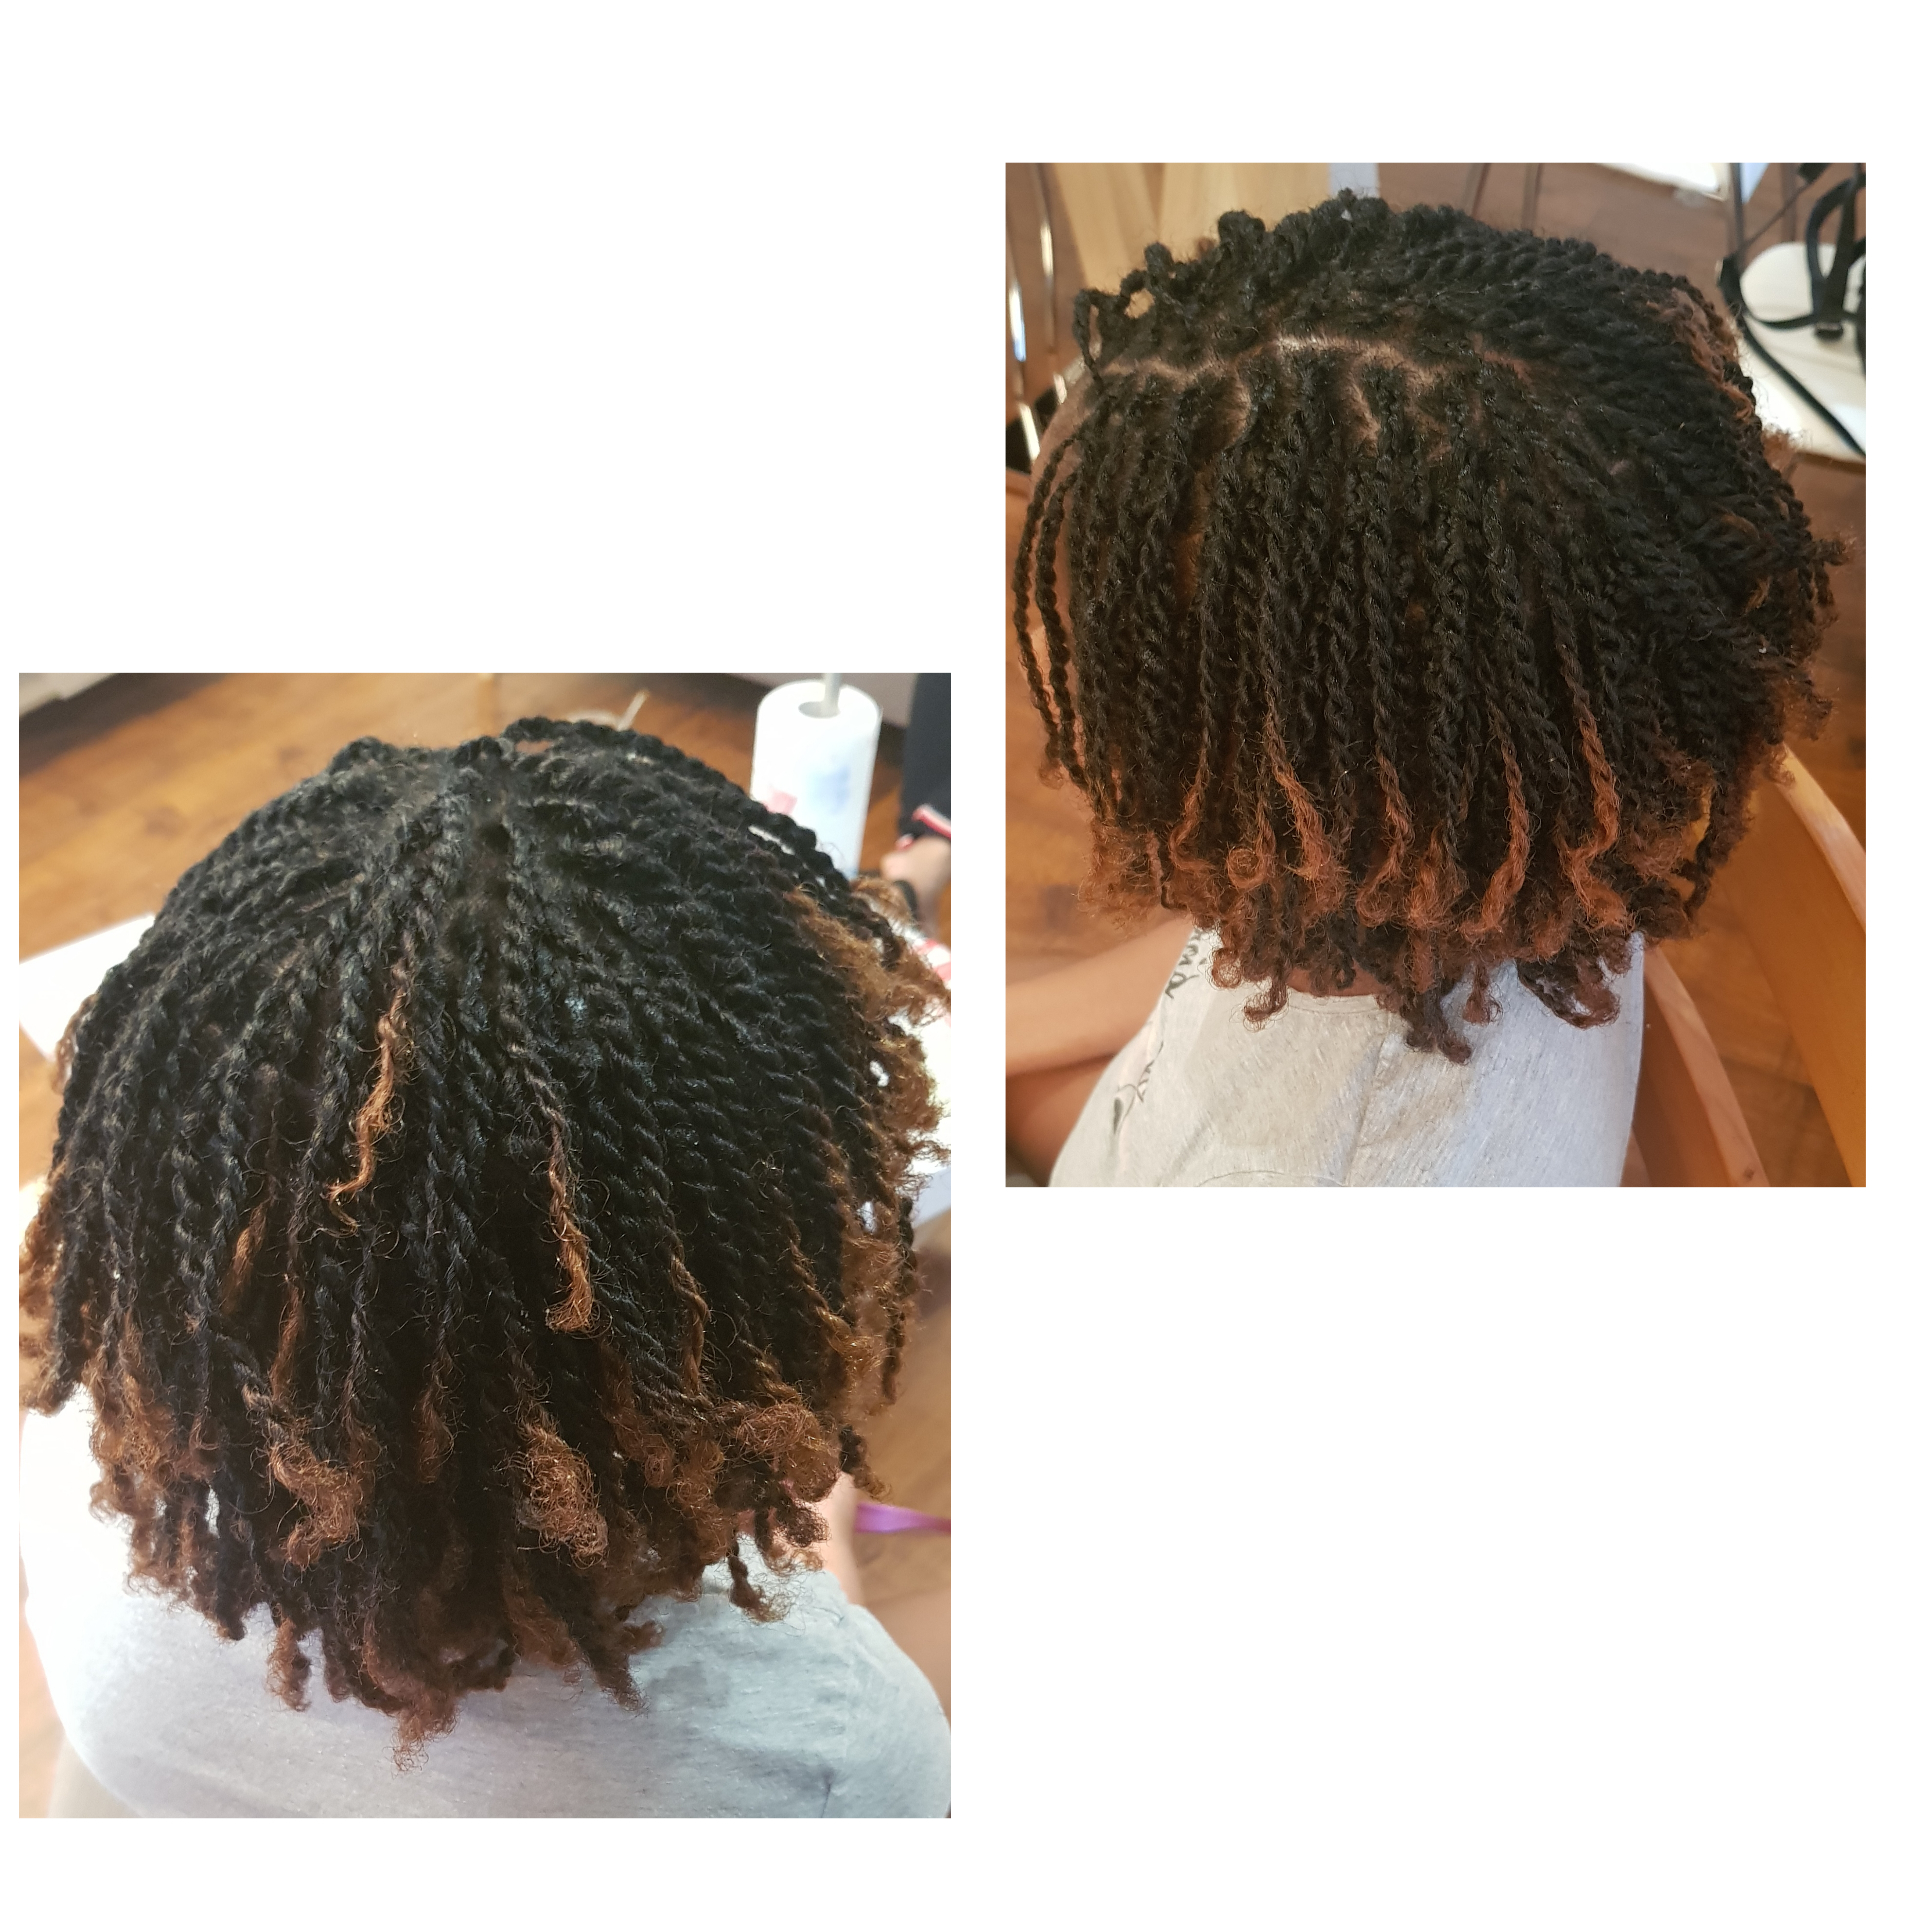 salon de coiffure afro tresse tresses box braids crochet braids vanilles tissages paris 75 77 78 91 92 93 94 95 YMUPLVKZ